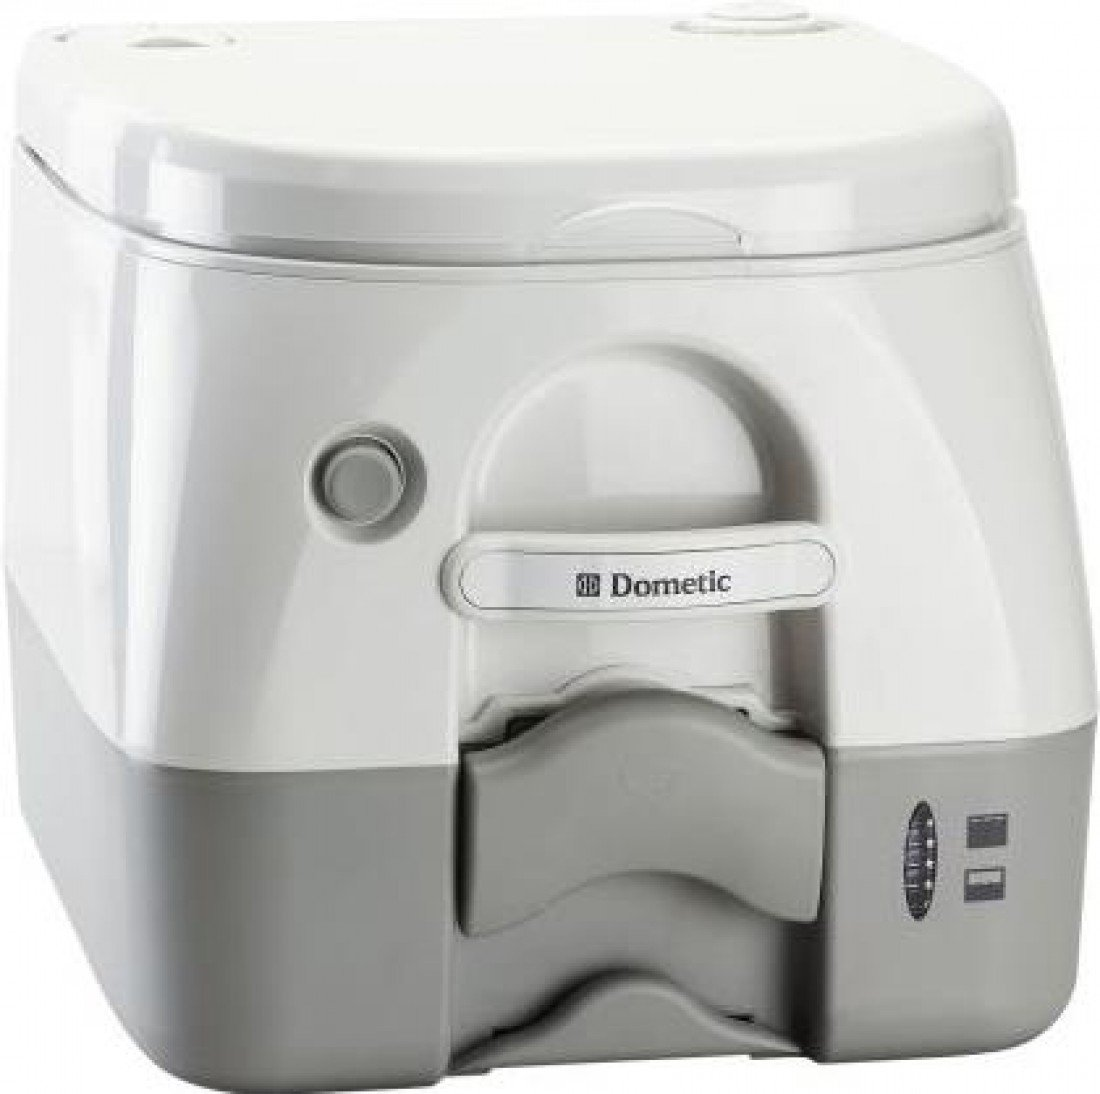 Toilette DOMETIC 972 weiß/grau